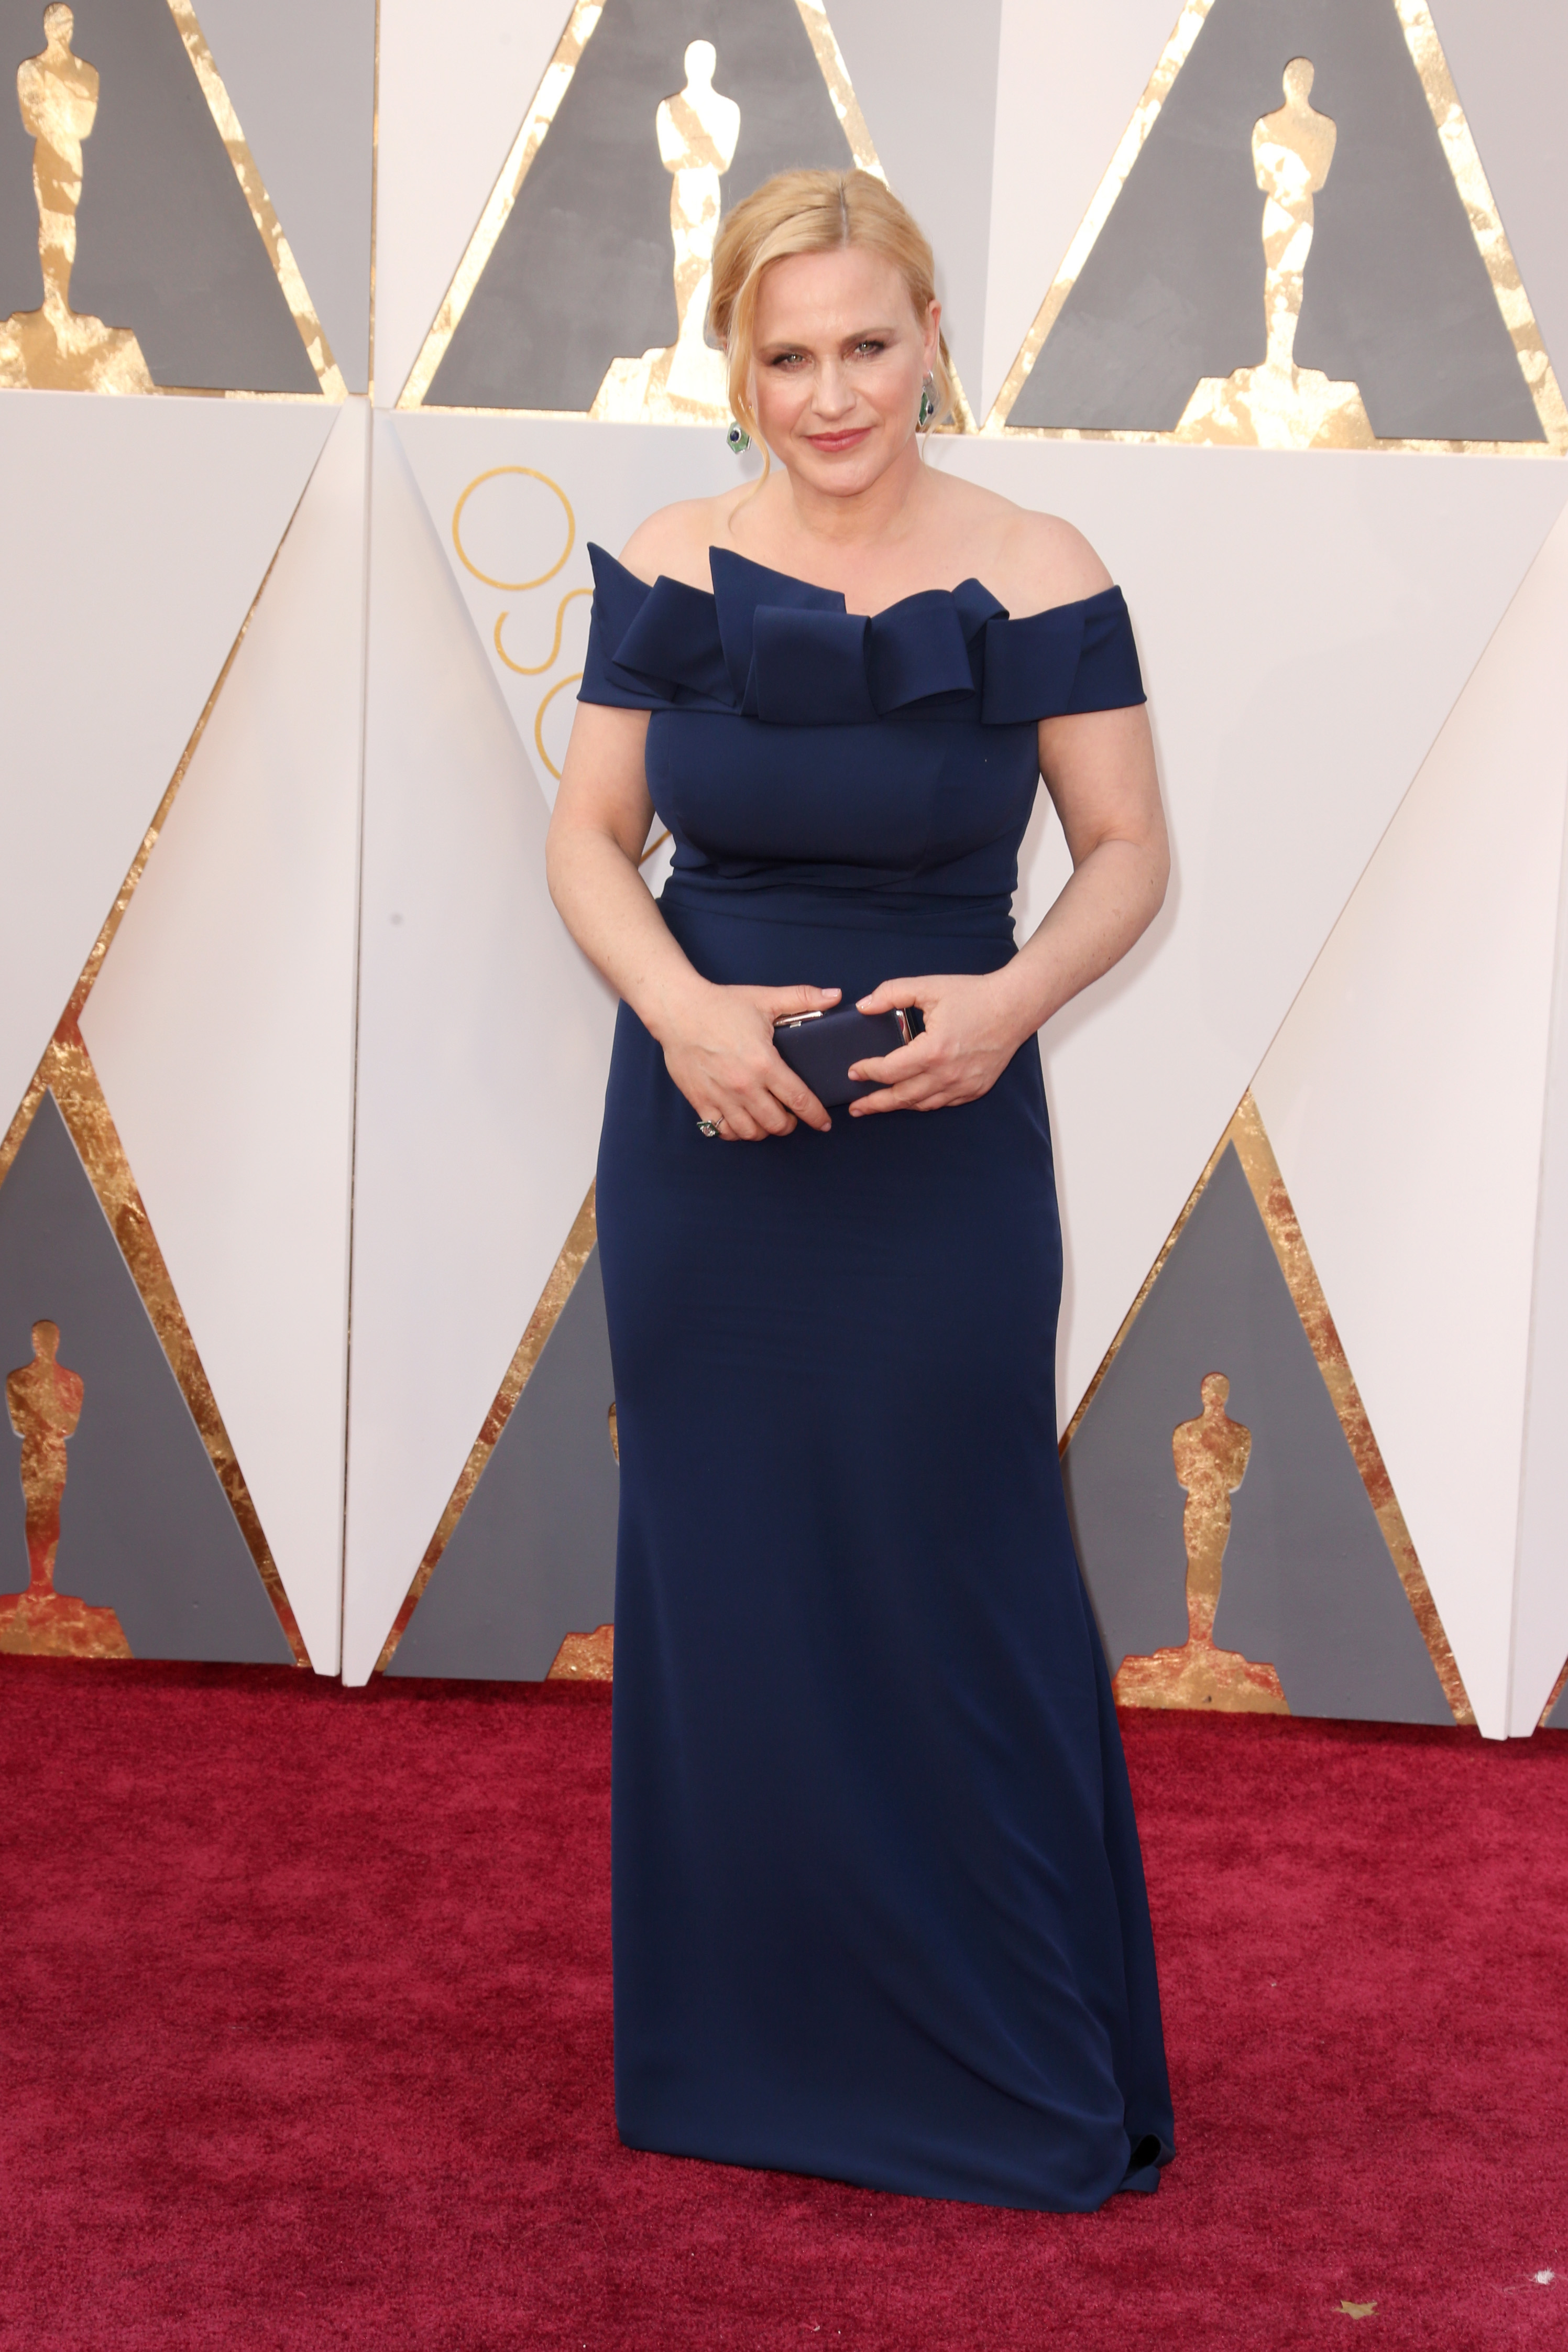 Patricia Arquette attends the 88th Annual Academy Awards on Feb. 28, 2016 in Hollywood, Calif.